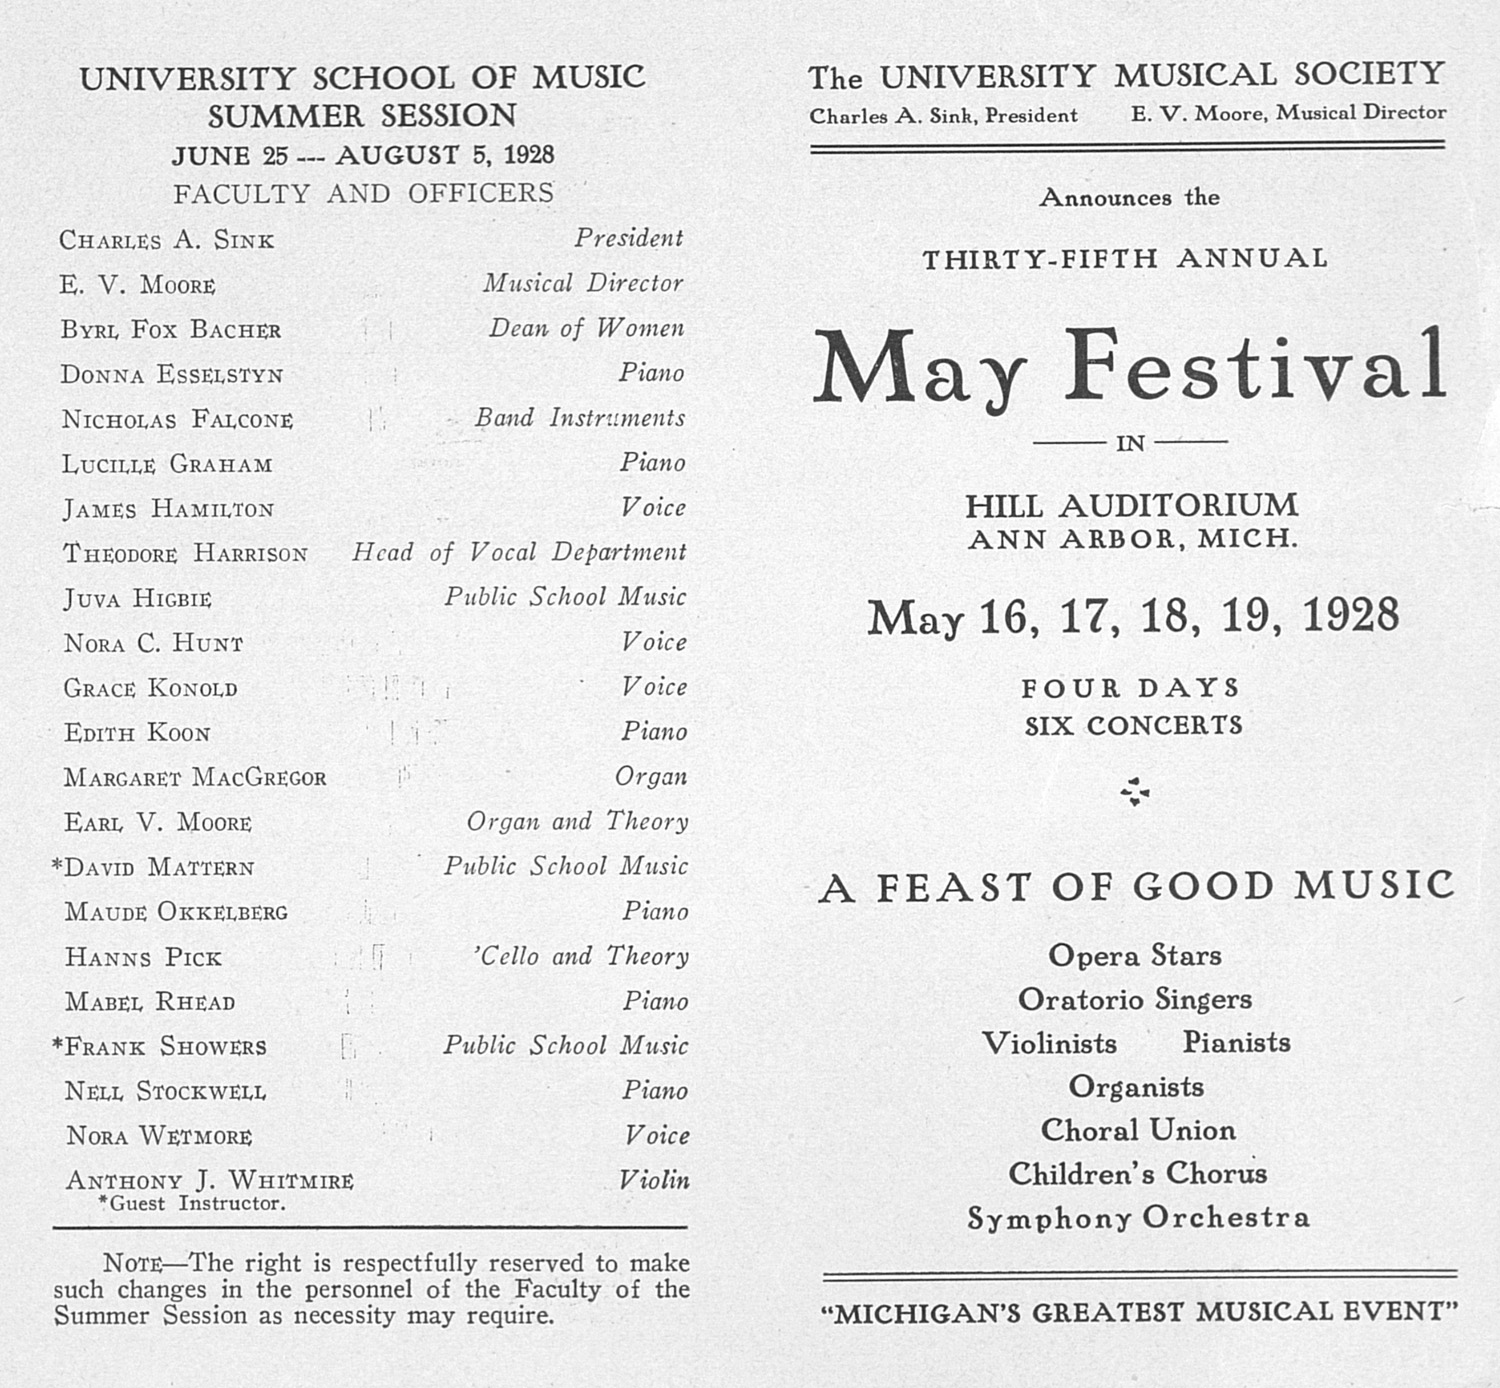 UMS Concert Program May 16 17 18 19 1928 May Festival – Concert Program